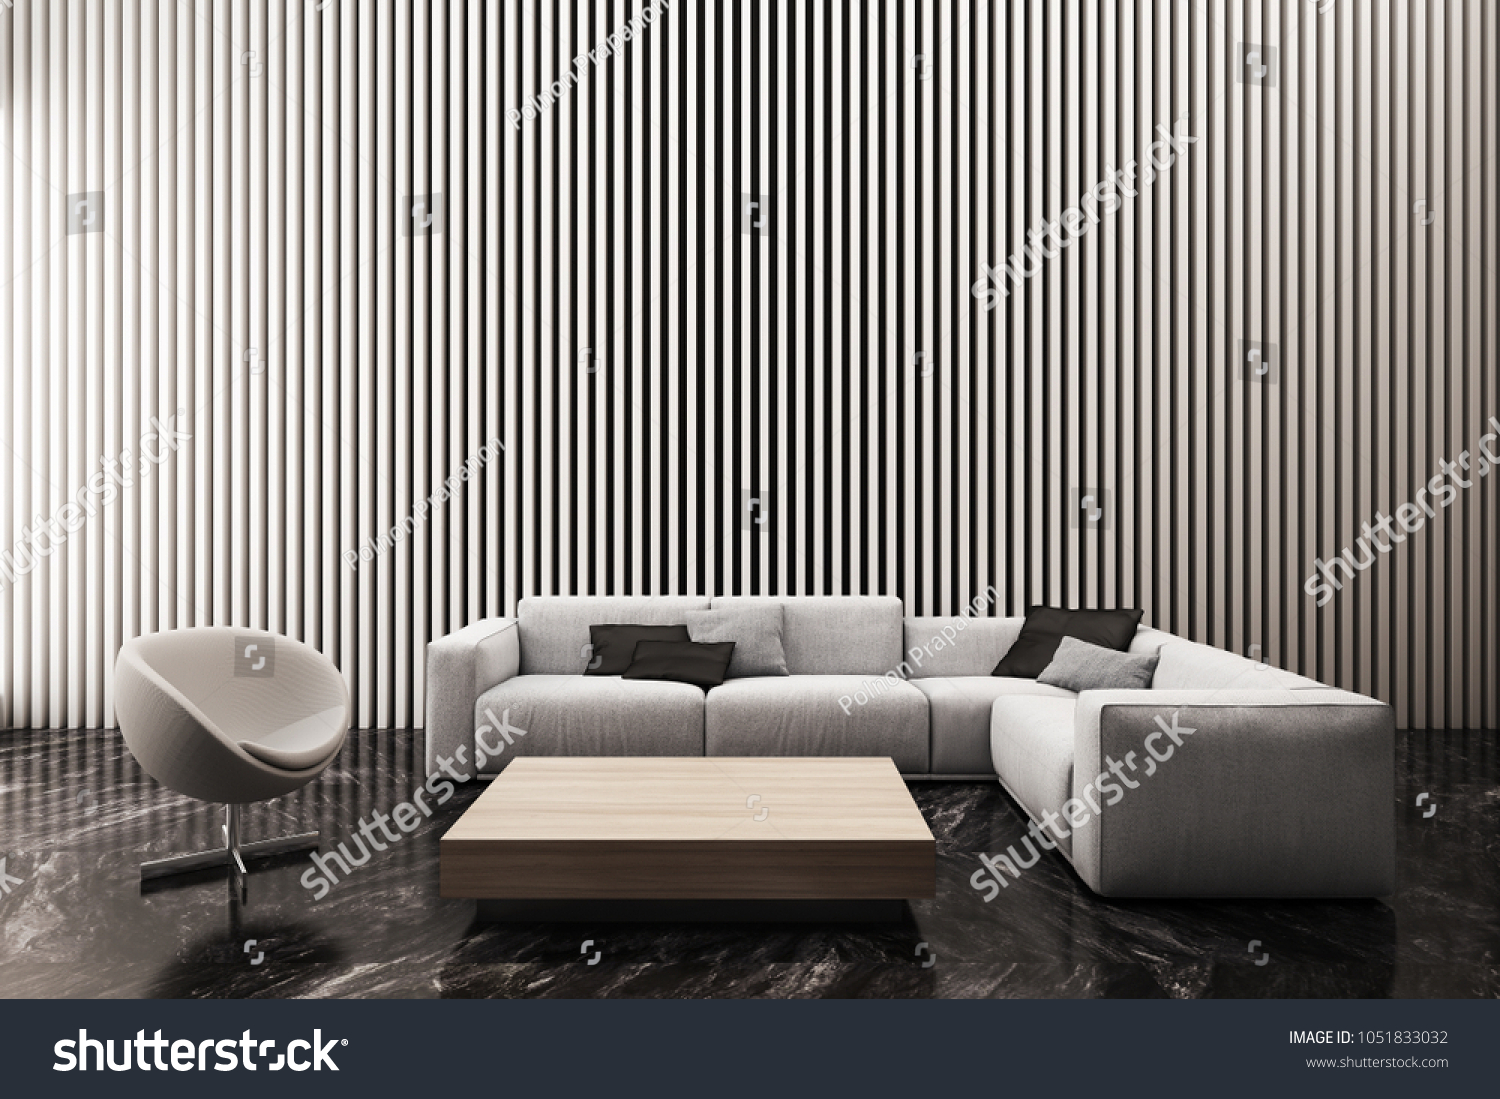 Modern living room decorate wall with white vertical battens pattern 3d rendering